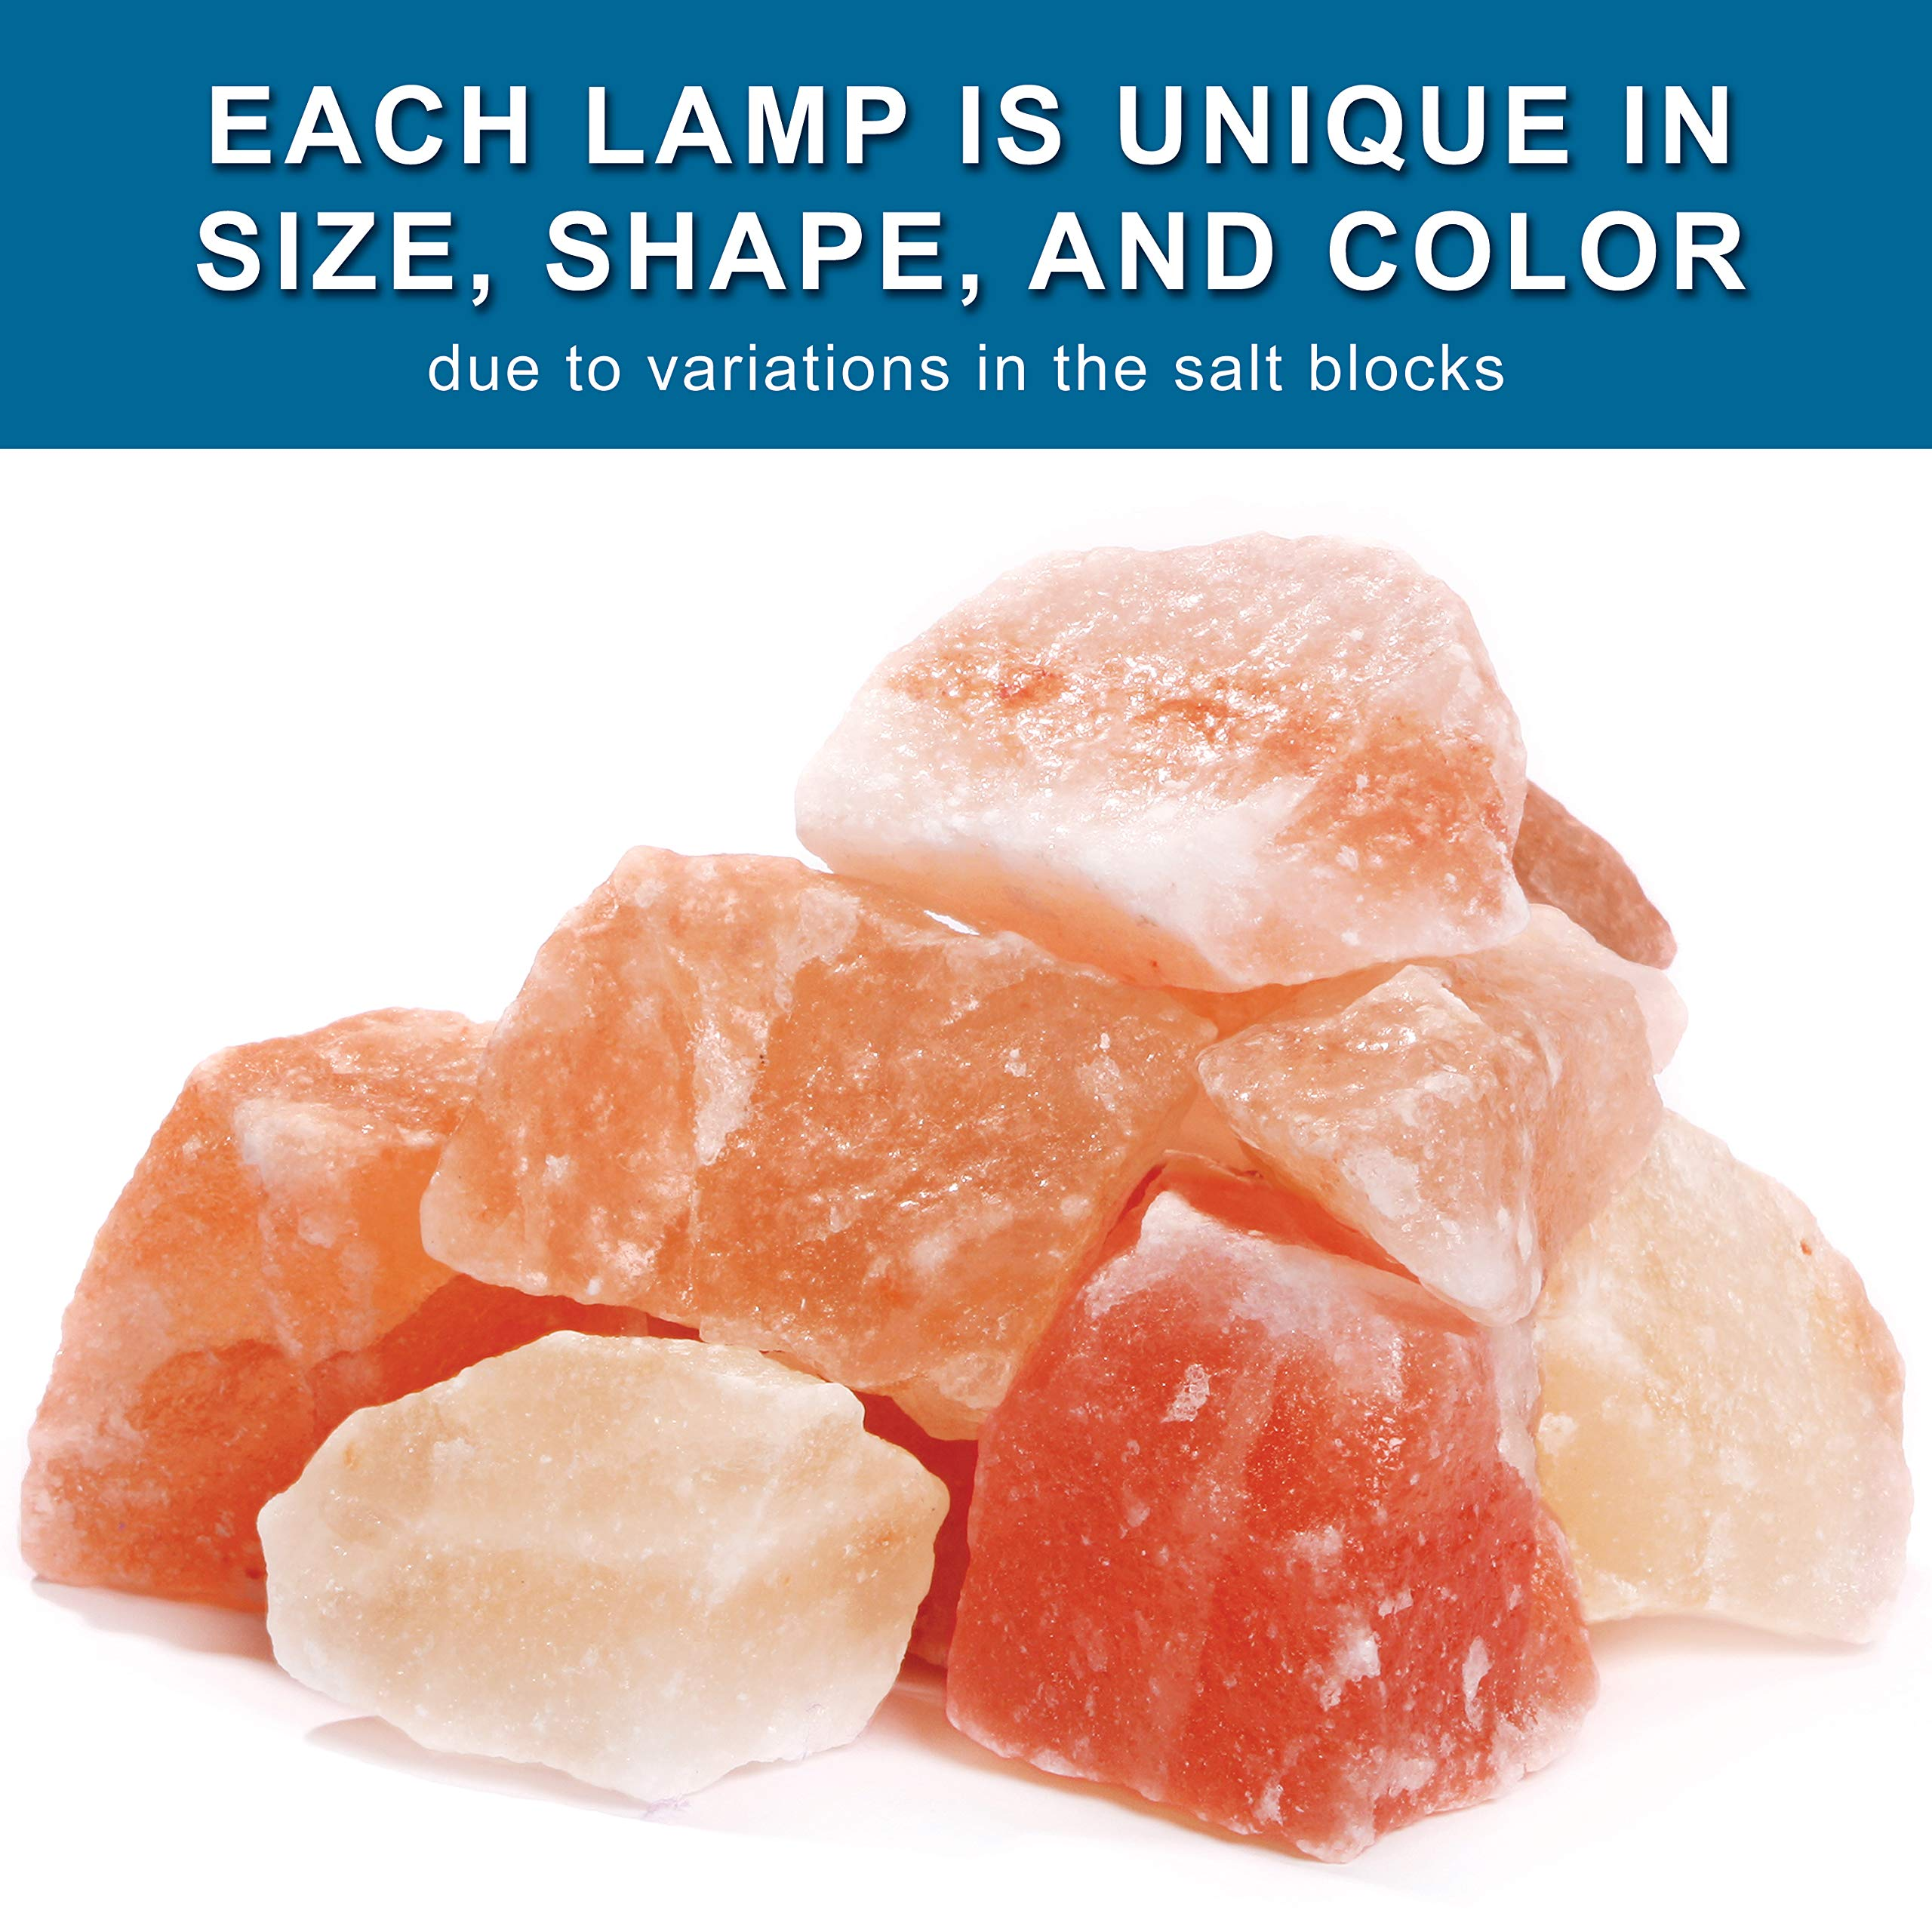 My Perfect Nights Himalayan Rock Salt Lamp Night Light Natural Hand Carved Pure Authentic Pink Salt Crystals from Pakistan use in Bedroom Family Room Hallway Office (2 Pack) by My Perfect Nights (Image #7)